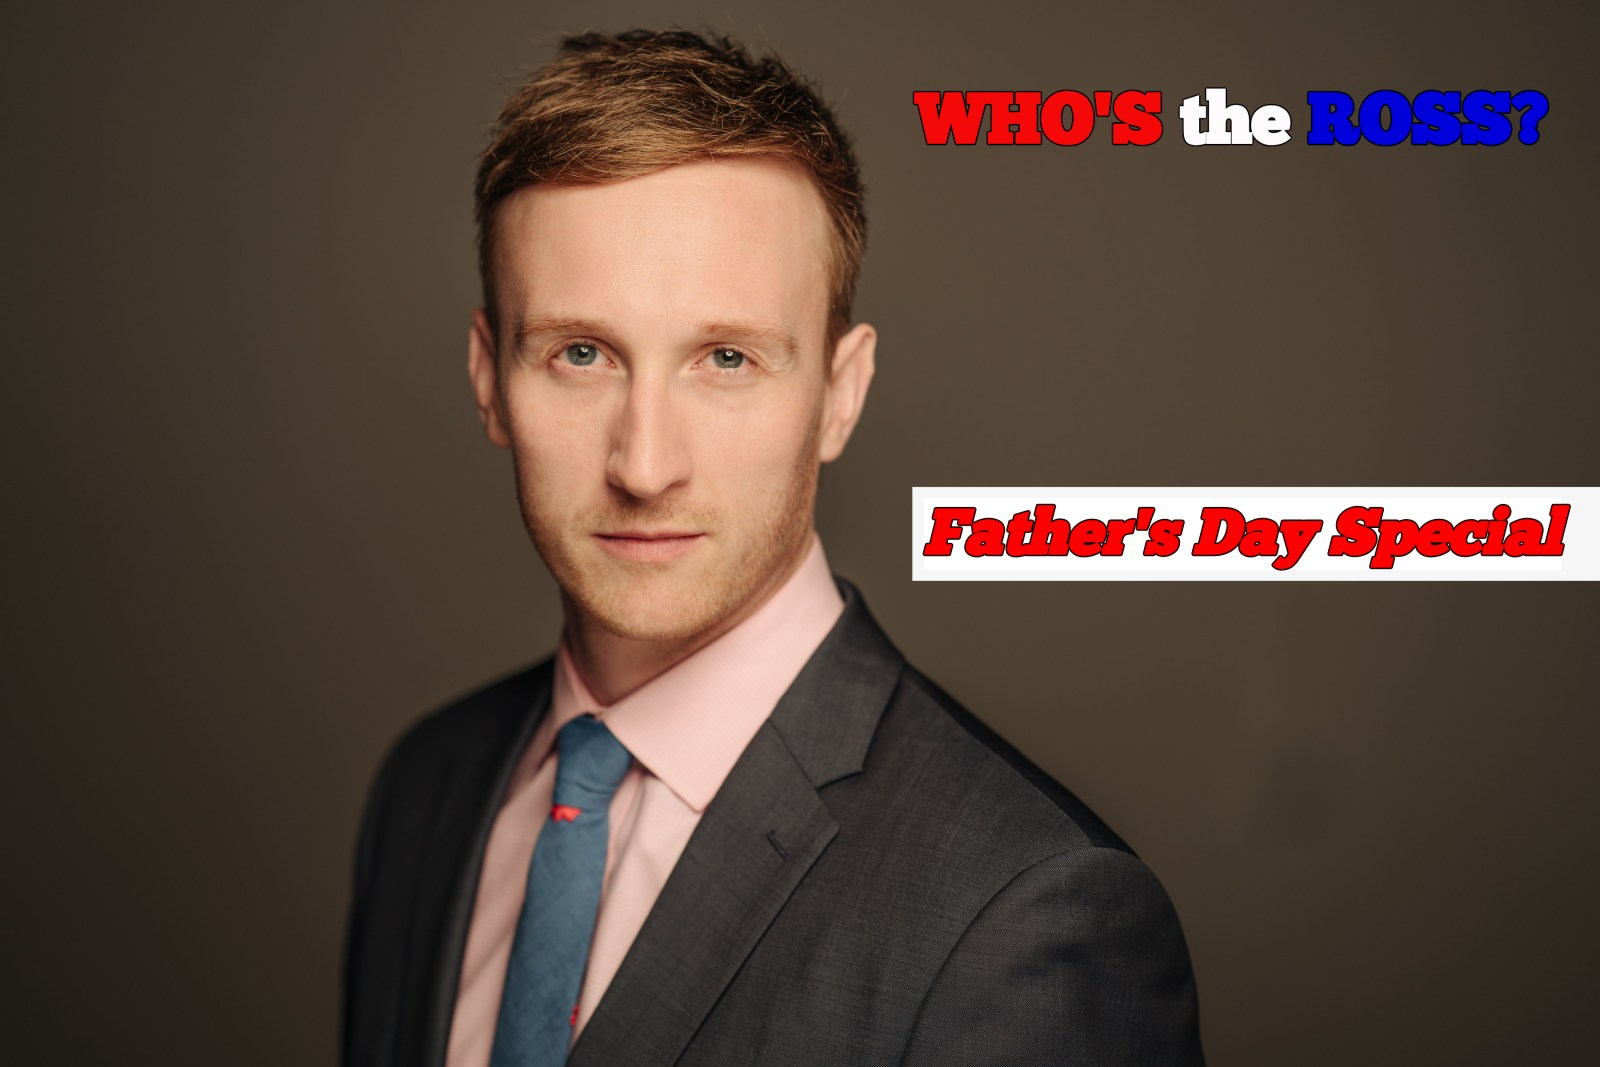 """Who's the Ross?"" who's the ross Aaron comedy comedian ""Father's Day"" father dad comic comedian humor funny late-night talk show sketch improv performance LA Los Angeles Hollywood PDX Portland Molly Malone's"